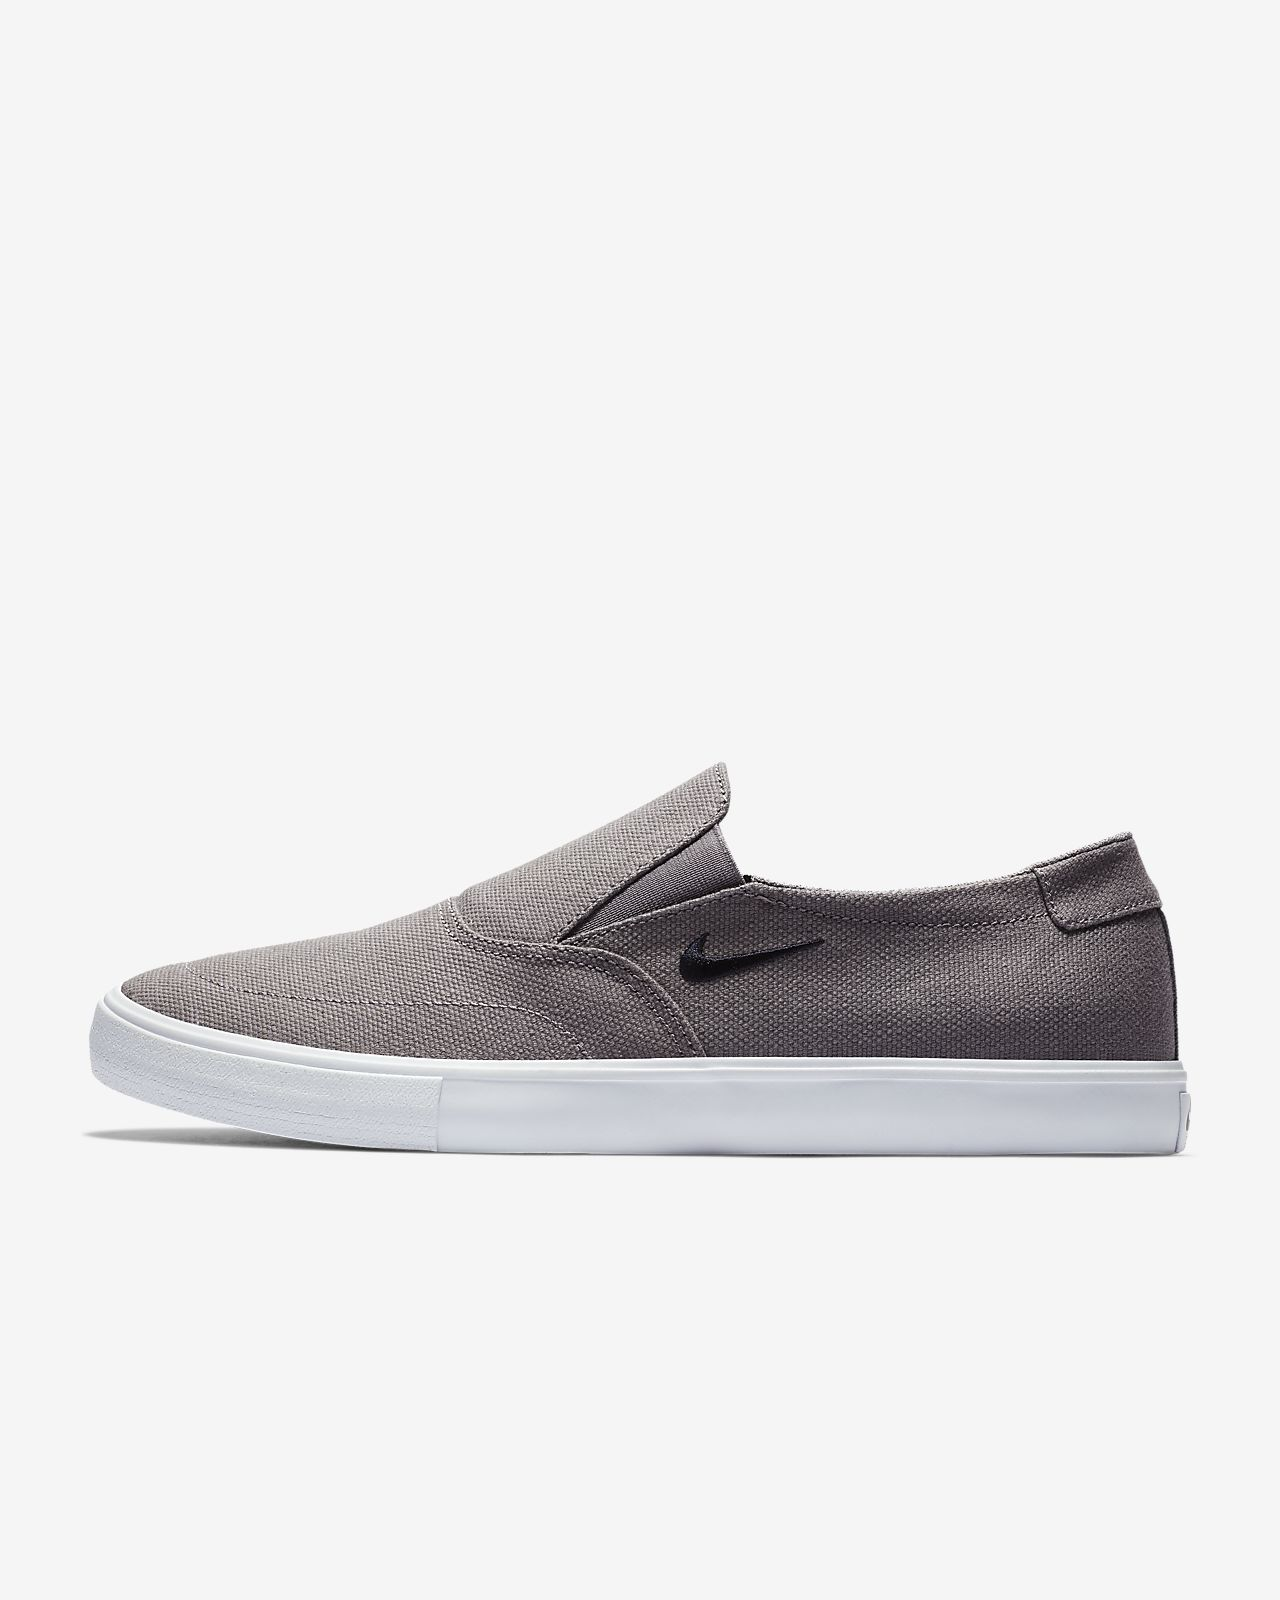 Nike SB Portmore II Solarsoft Slip-on Men s Skateboarding Shoe. Nike.com 98944932db